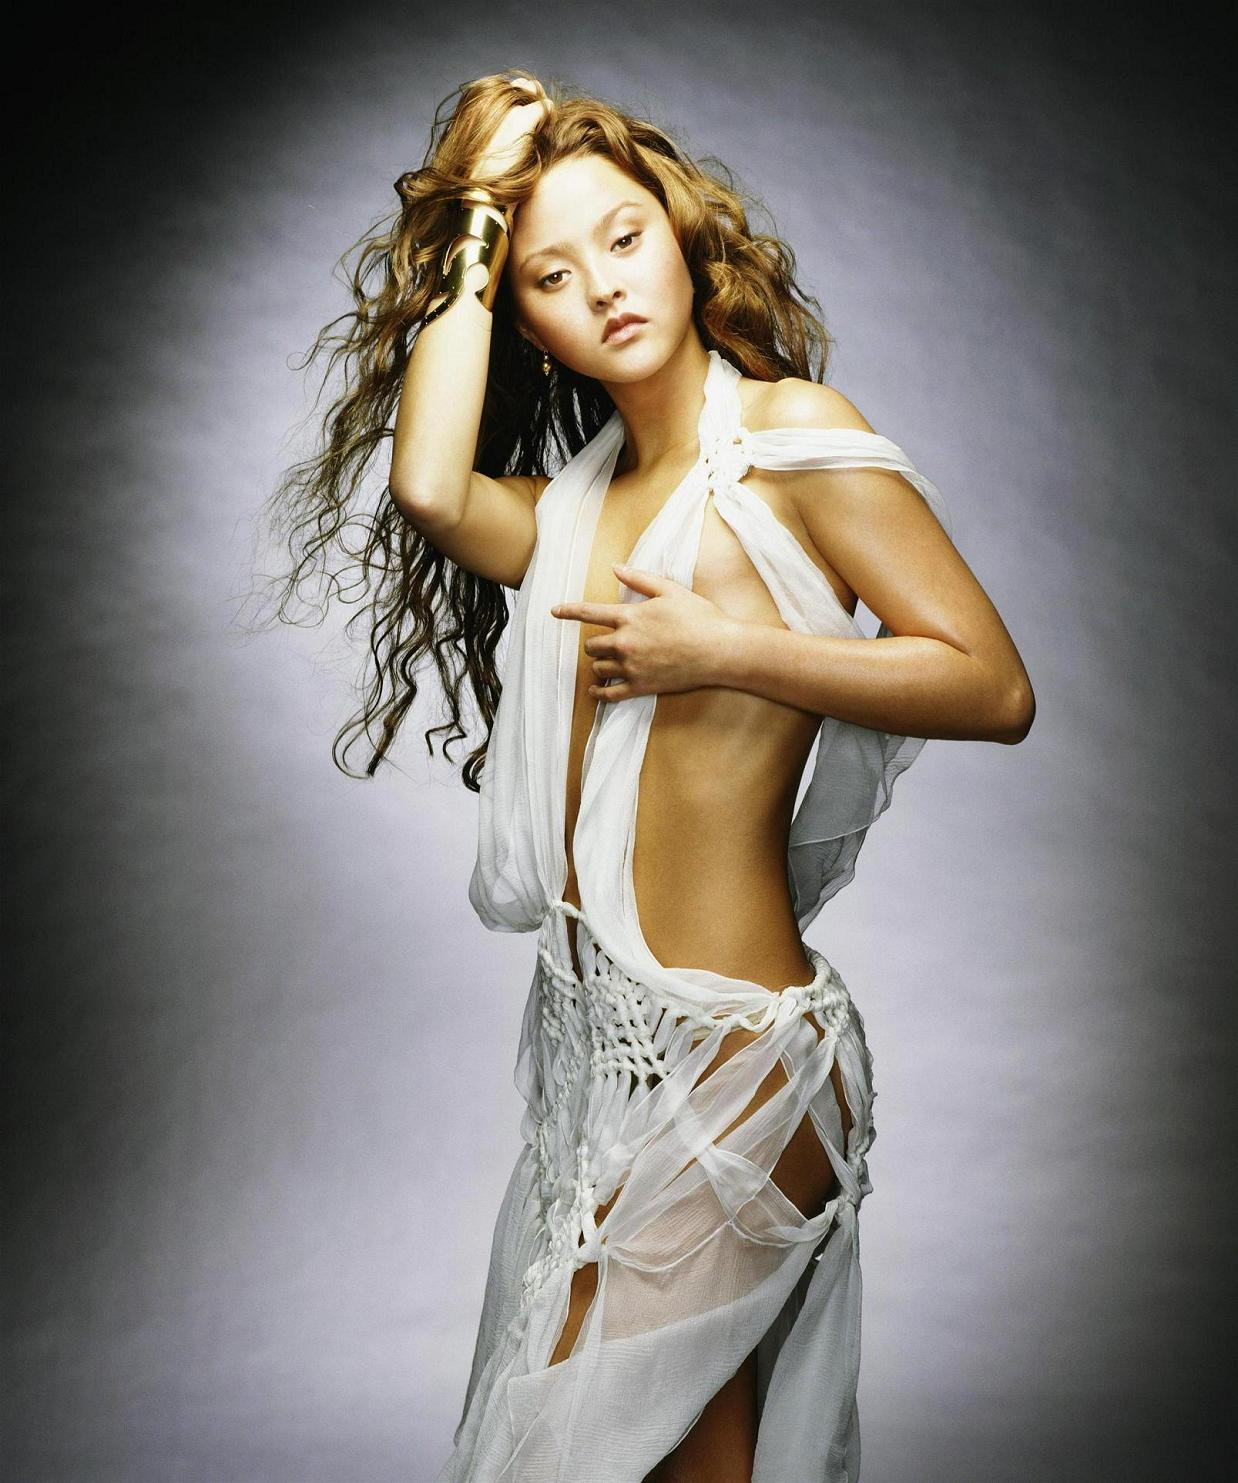 More Of Devon Aoki From Planck S Constant